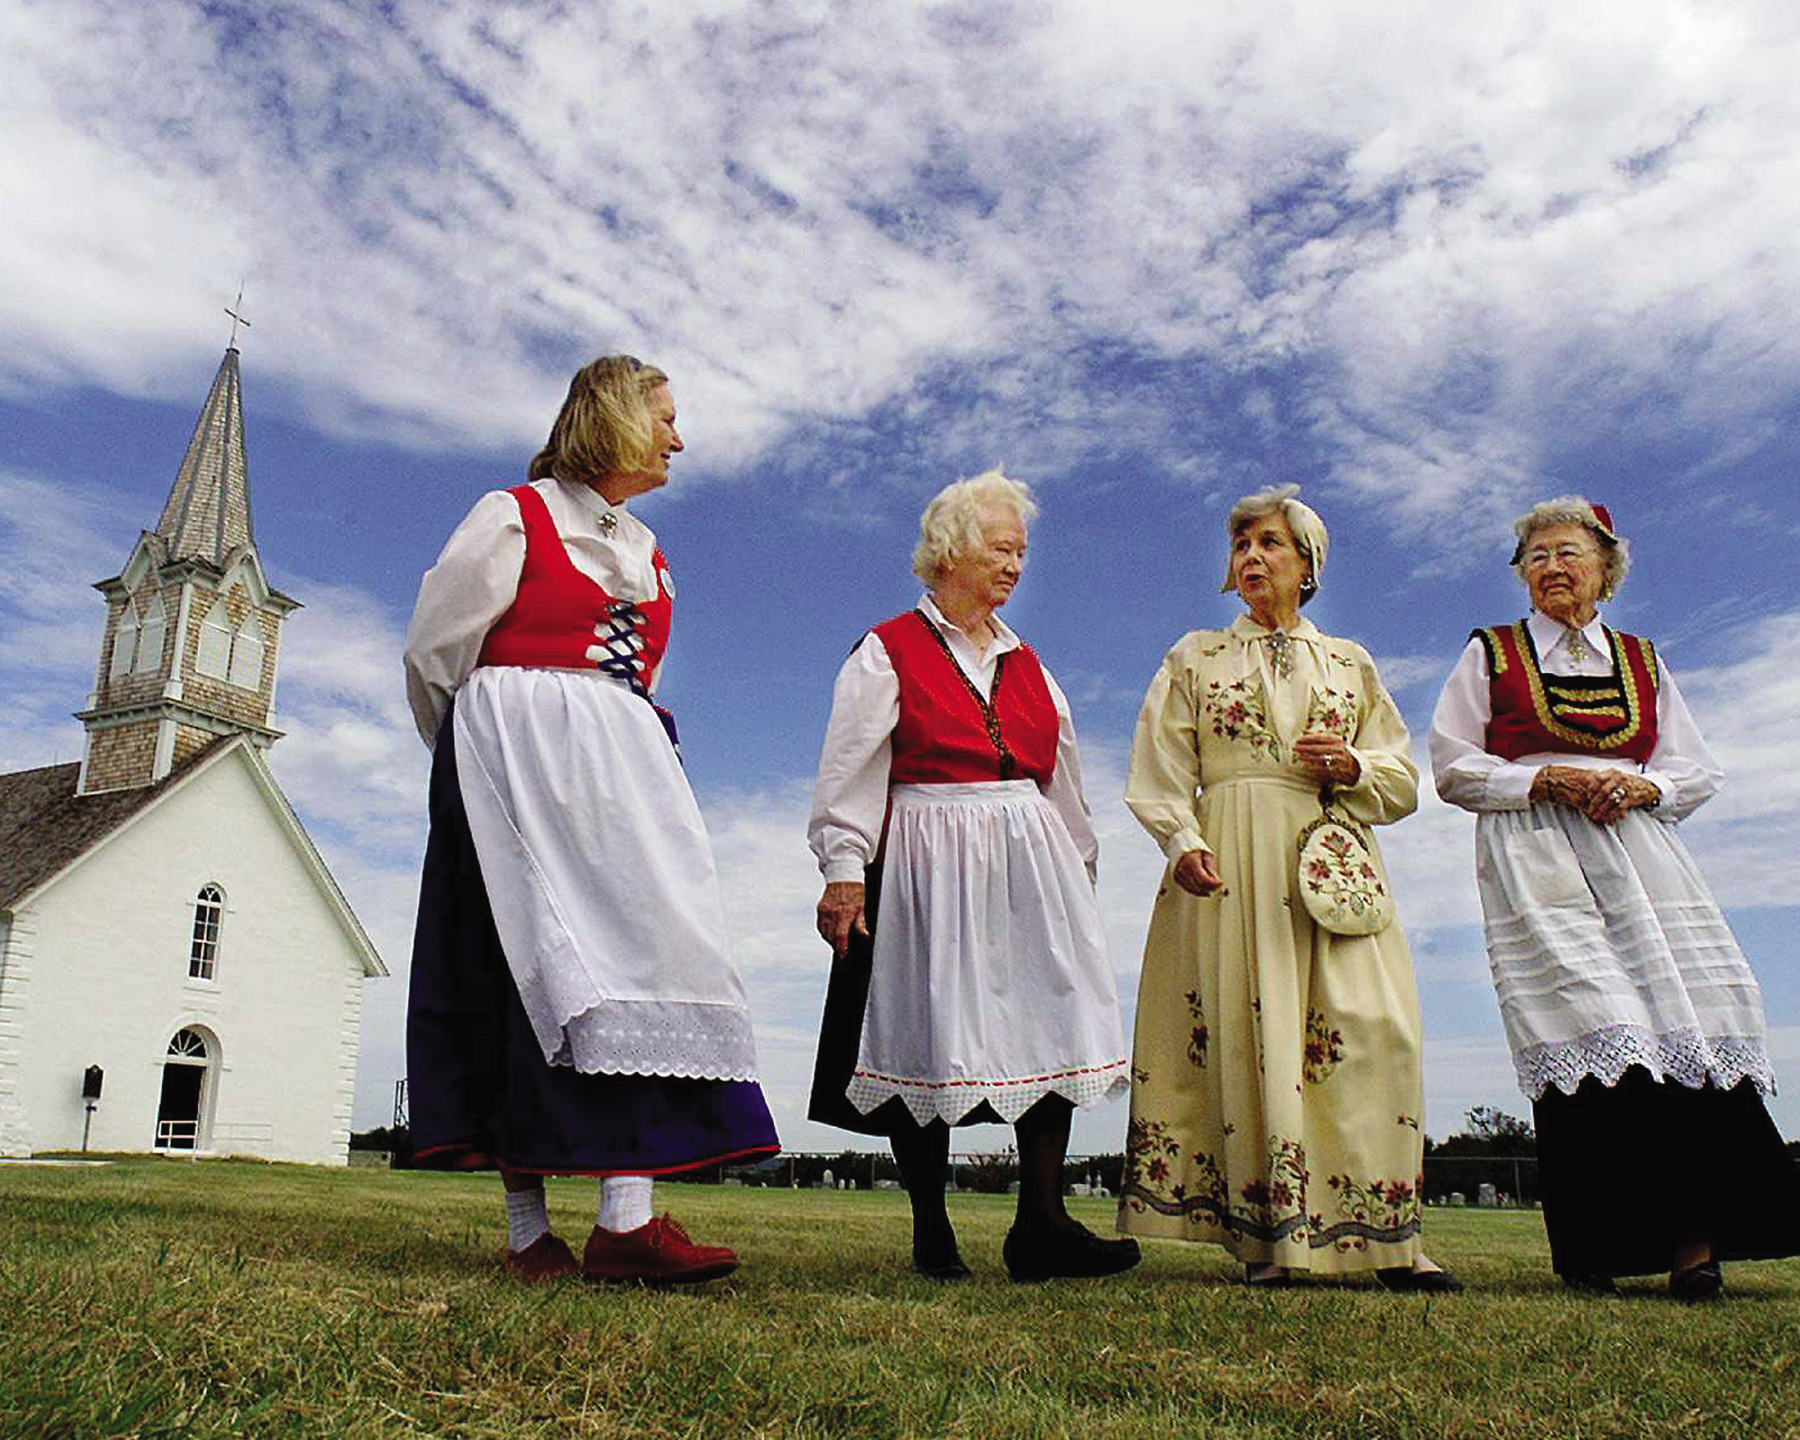 Norwegian Culture in Texas Through this initiative, the rich cultures of Texas are preserved and protected. Communities learn how to present their heritage to visitors through exhibits, festivals, brochures, etc. Credit: Fort Worth Star-Telegram